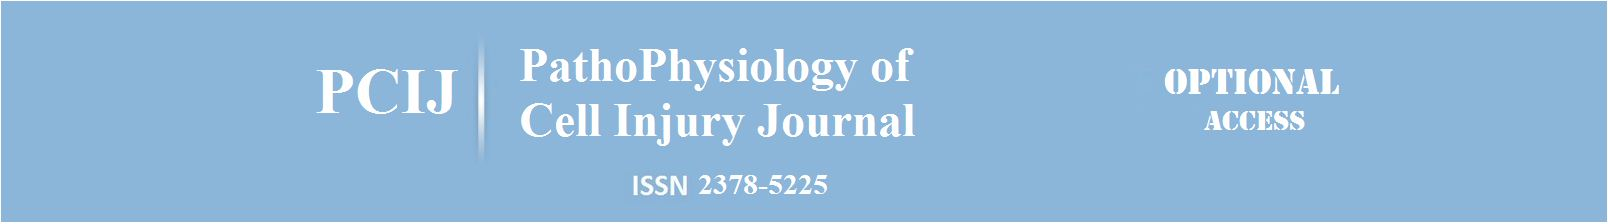 PathoPhysiology of Cell Injury Journal